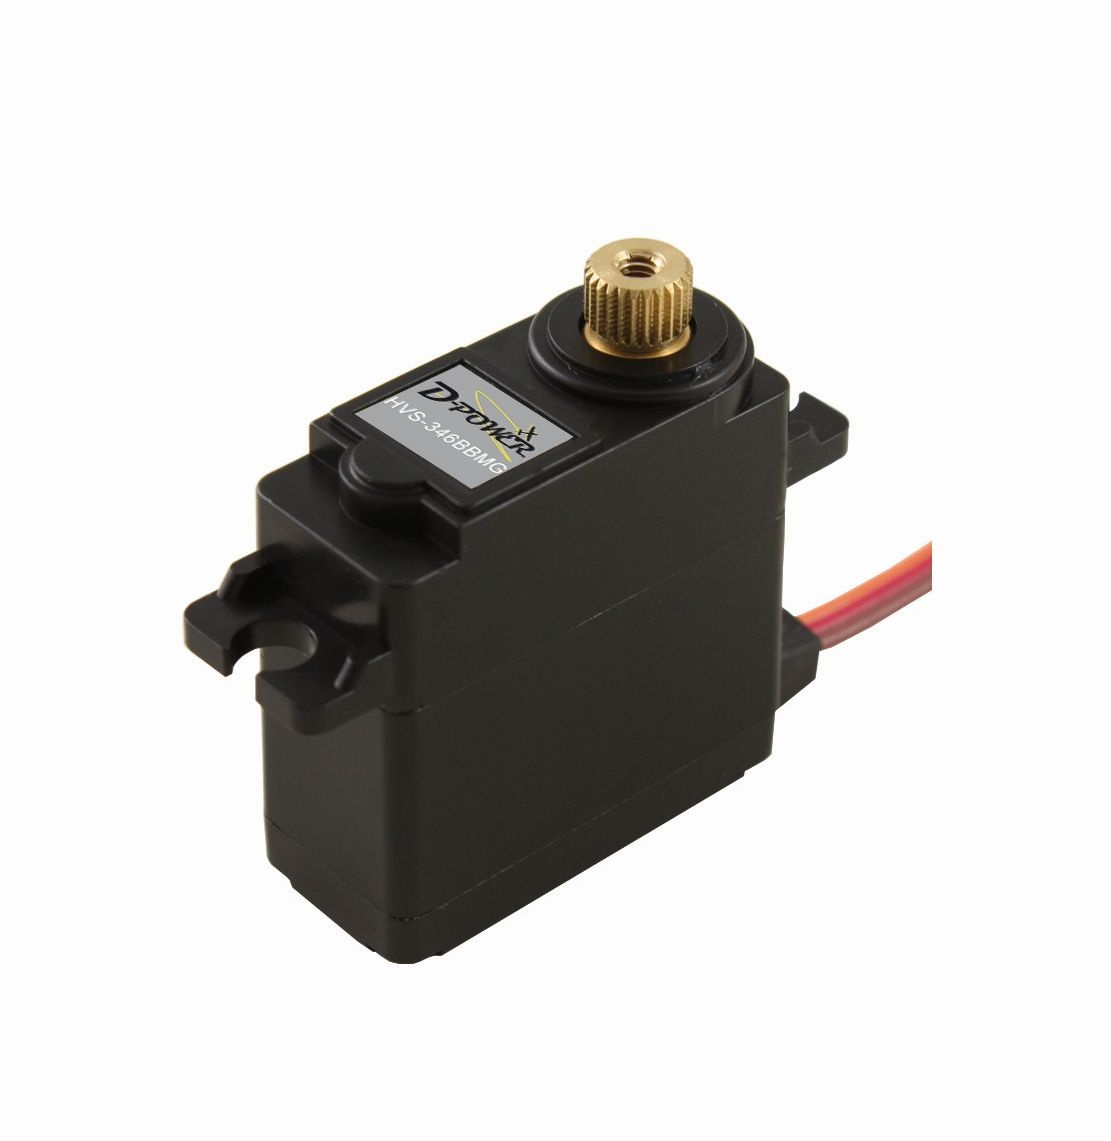 D-Power HVS-346BB MG Digital-Servo